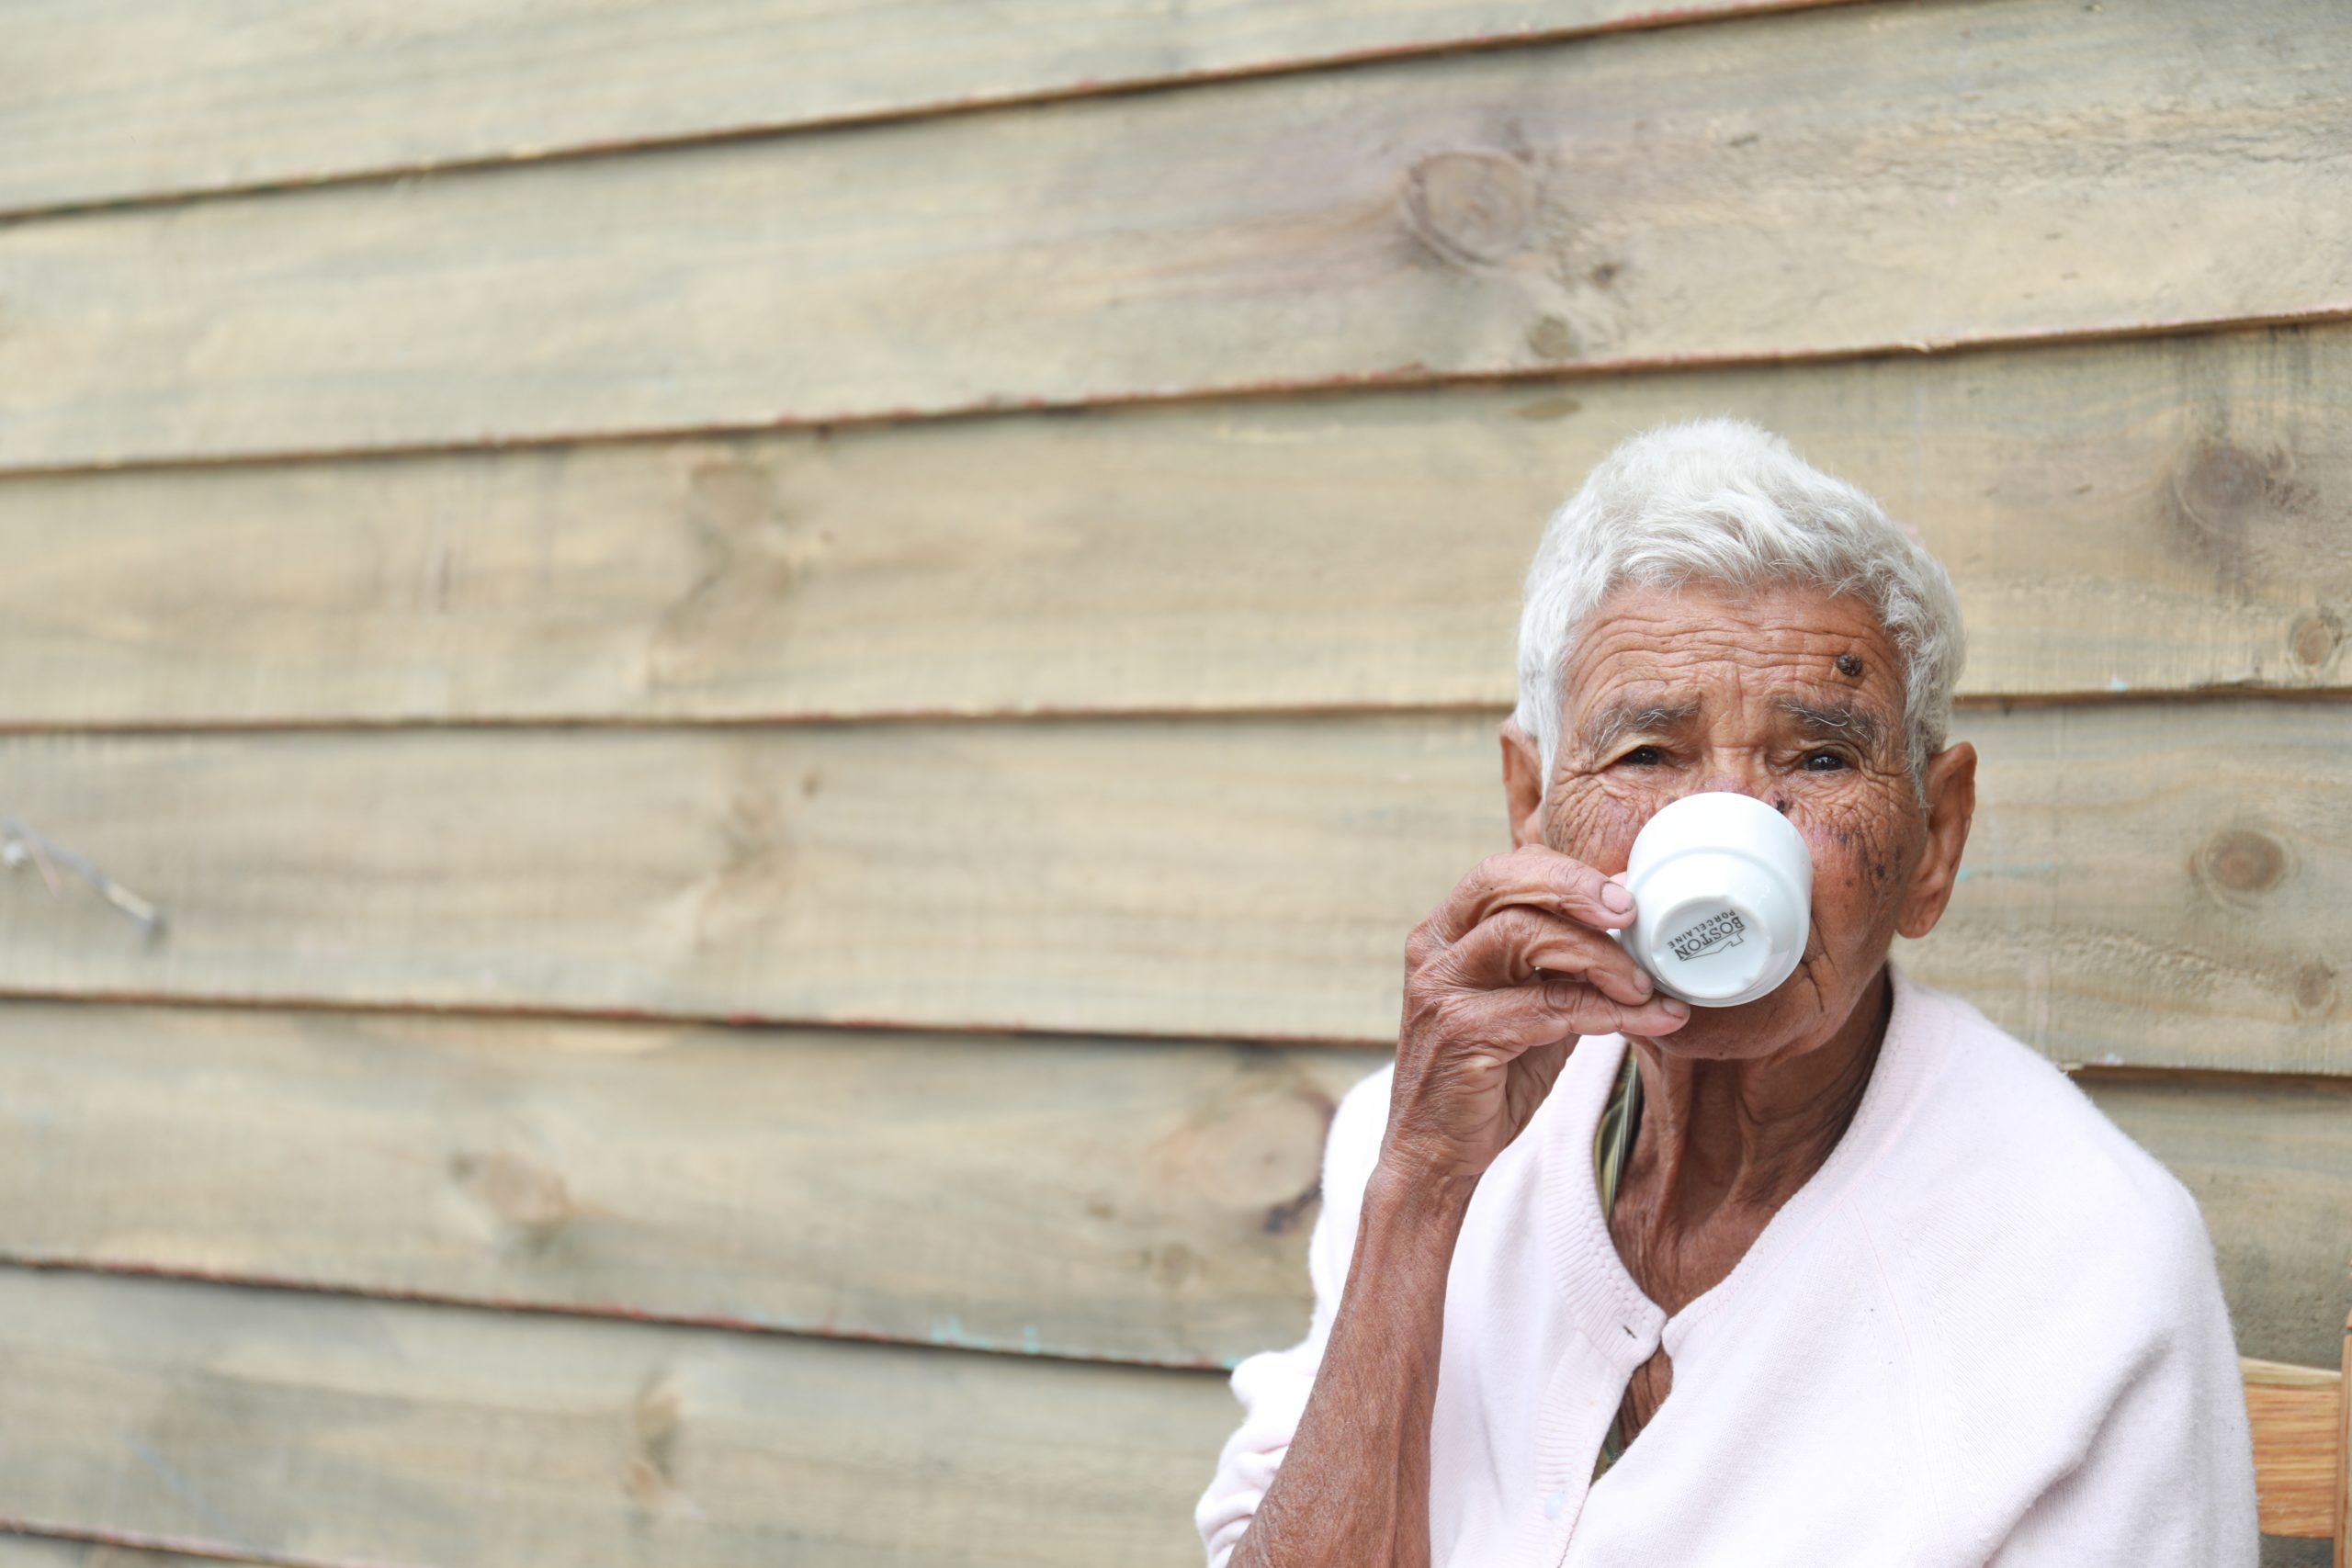 An old lady drinking coffee